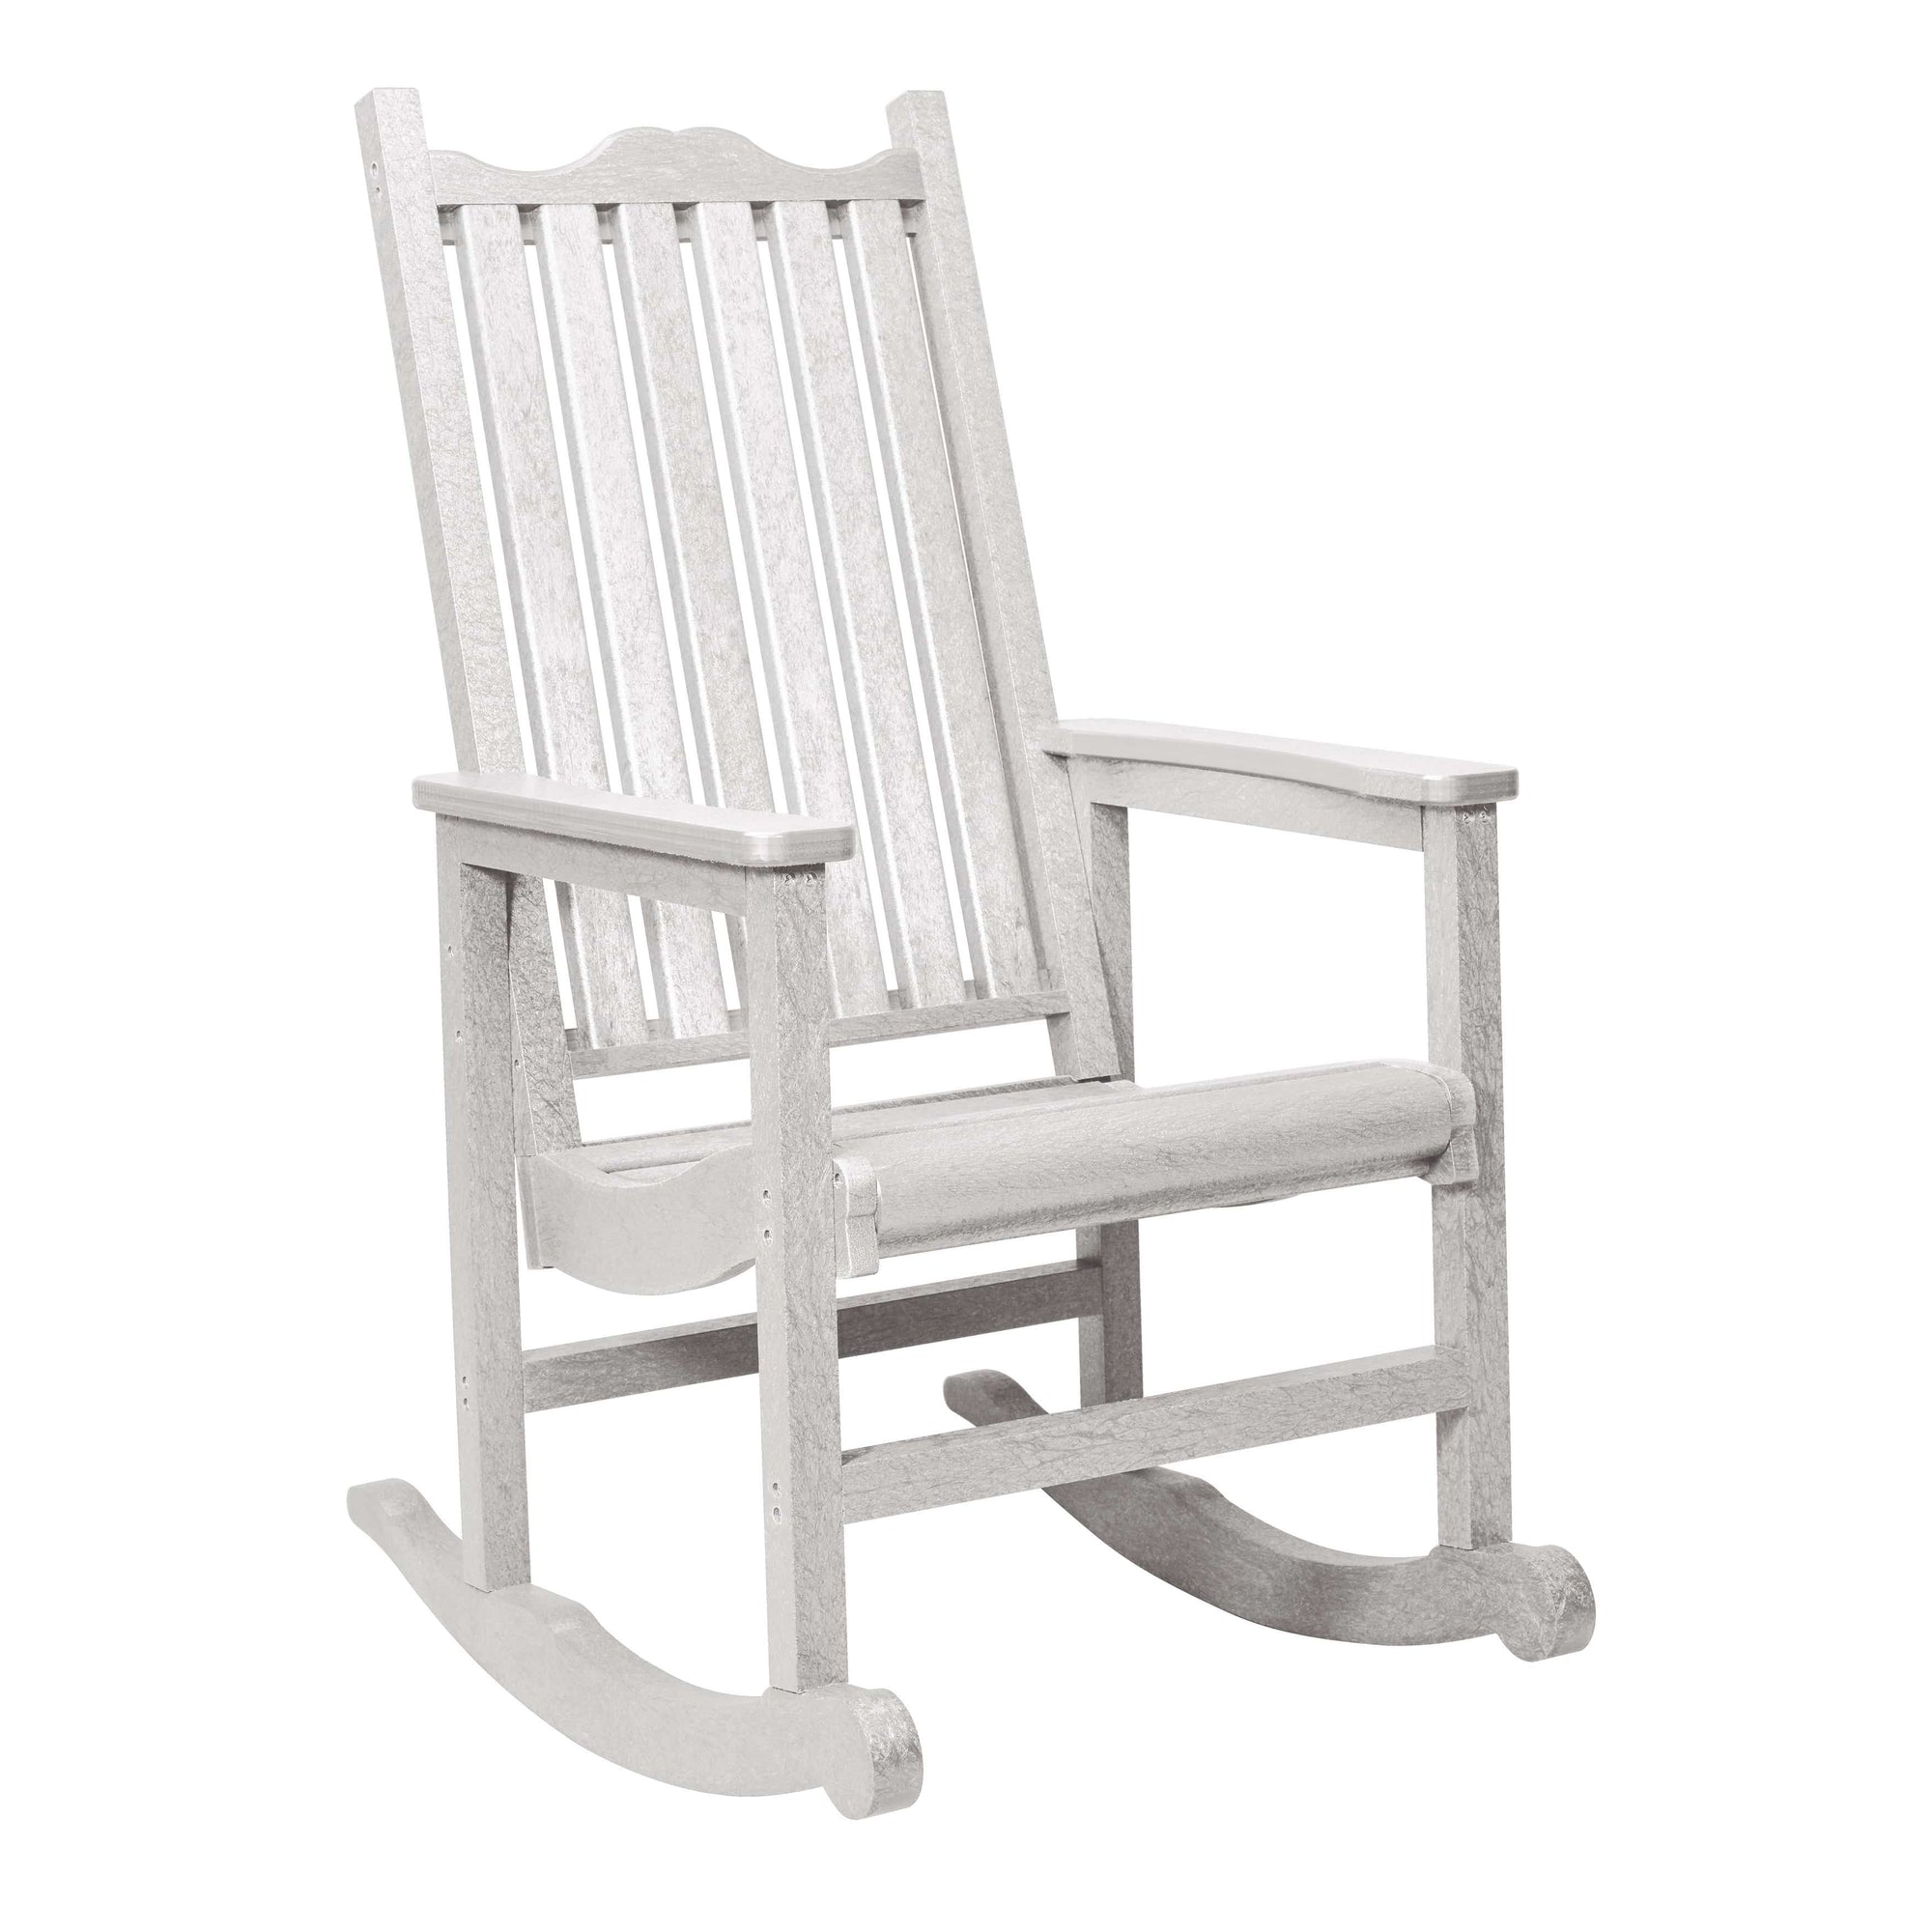 C.R. Plastic Products Rocker Red-01 C05 Porch Rocker